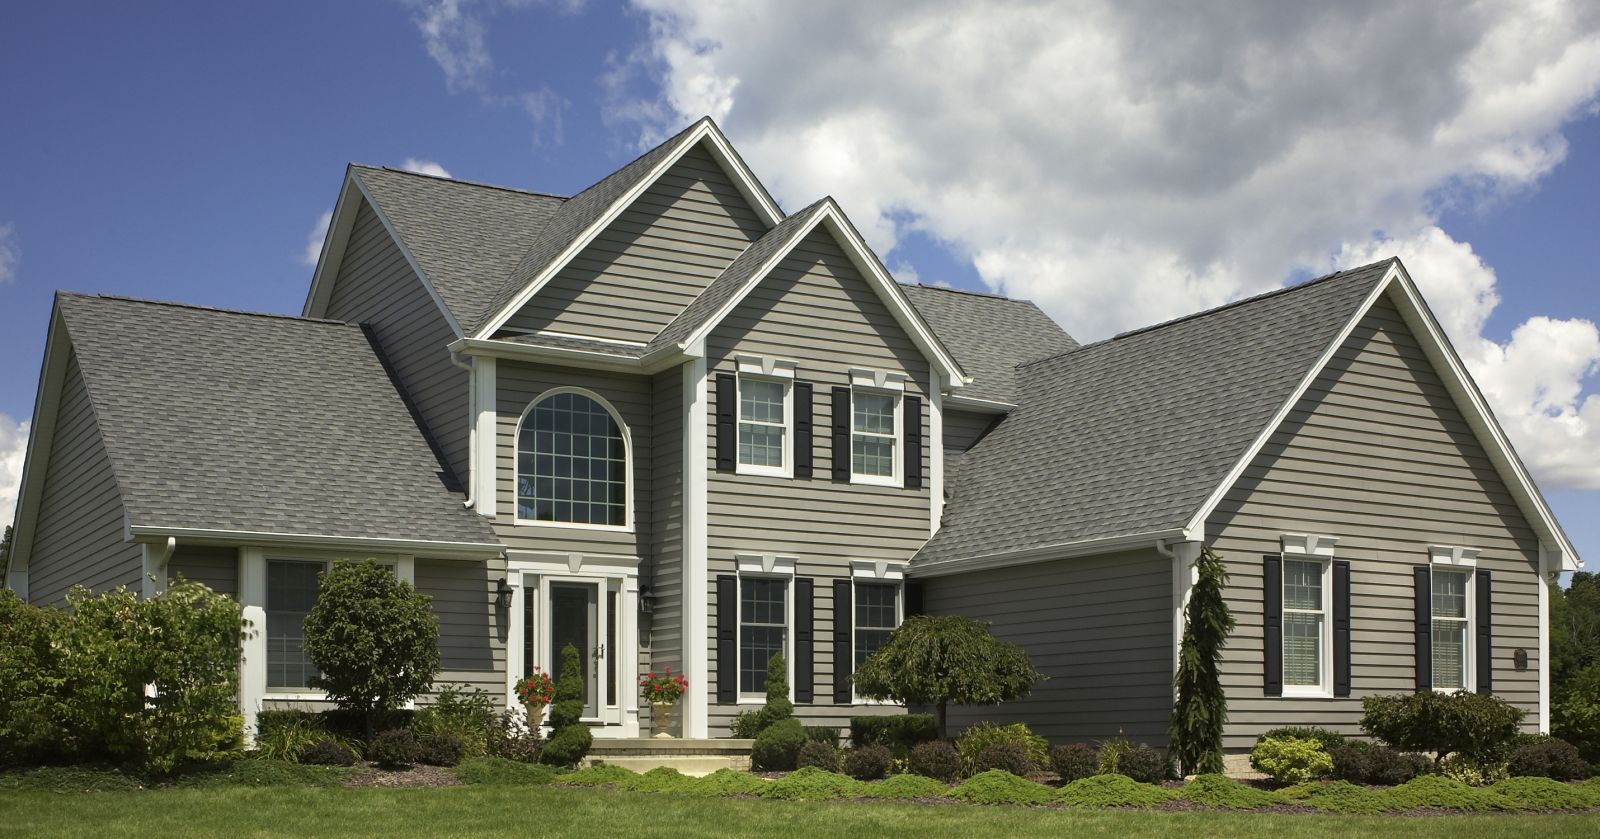 Siding Services Siding Contractor Residential Siding Services Main Line PA